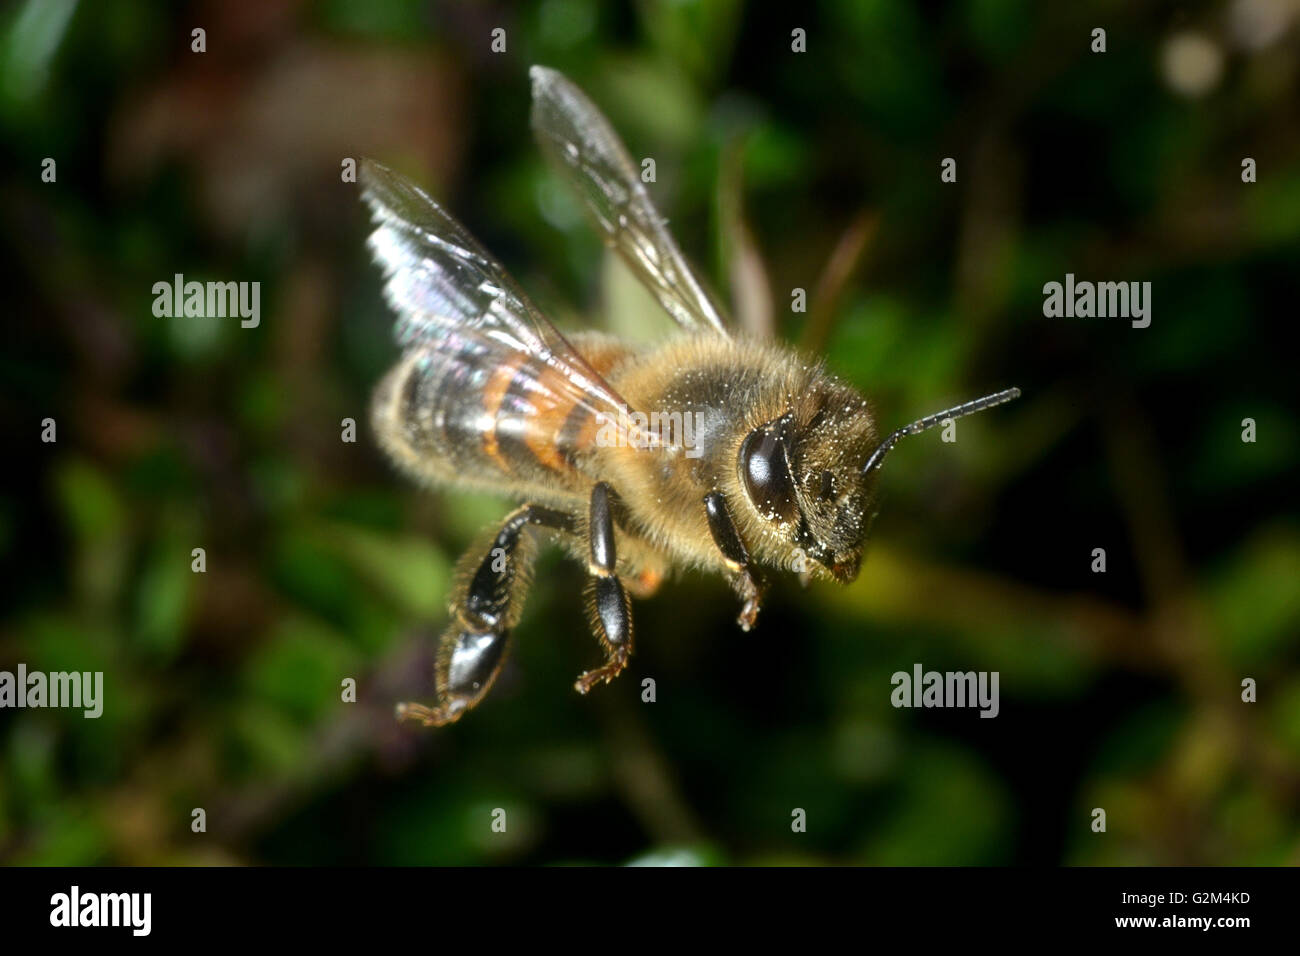 En vol d'abeilles sauvages Photo Stock